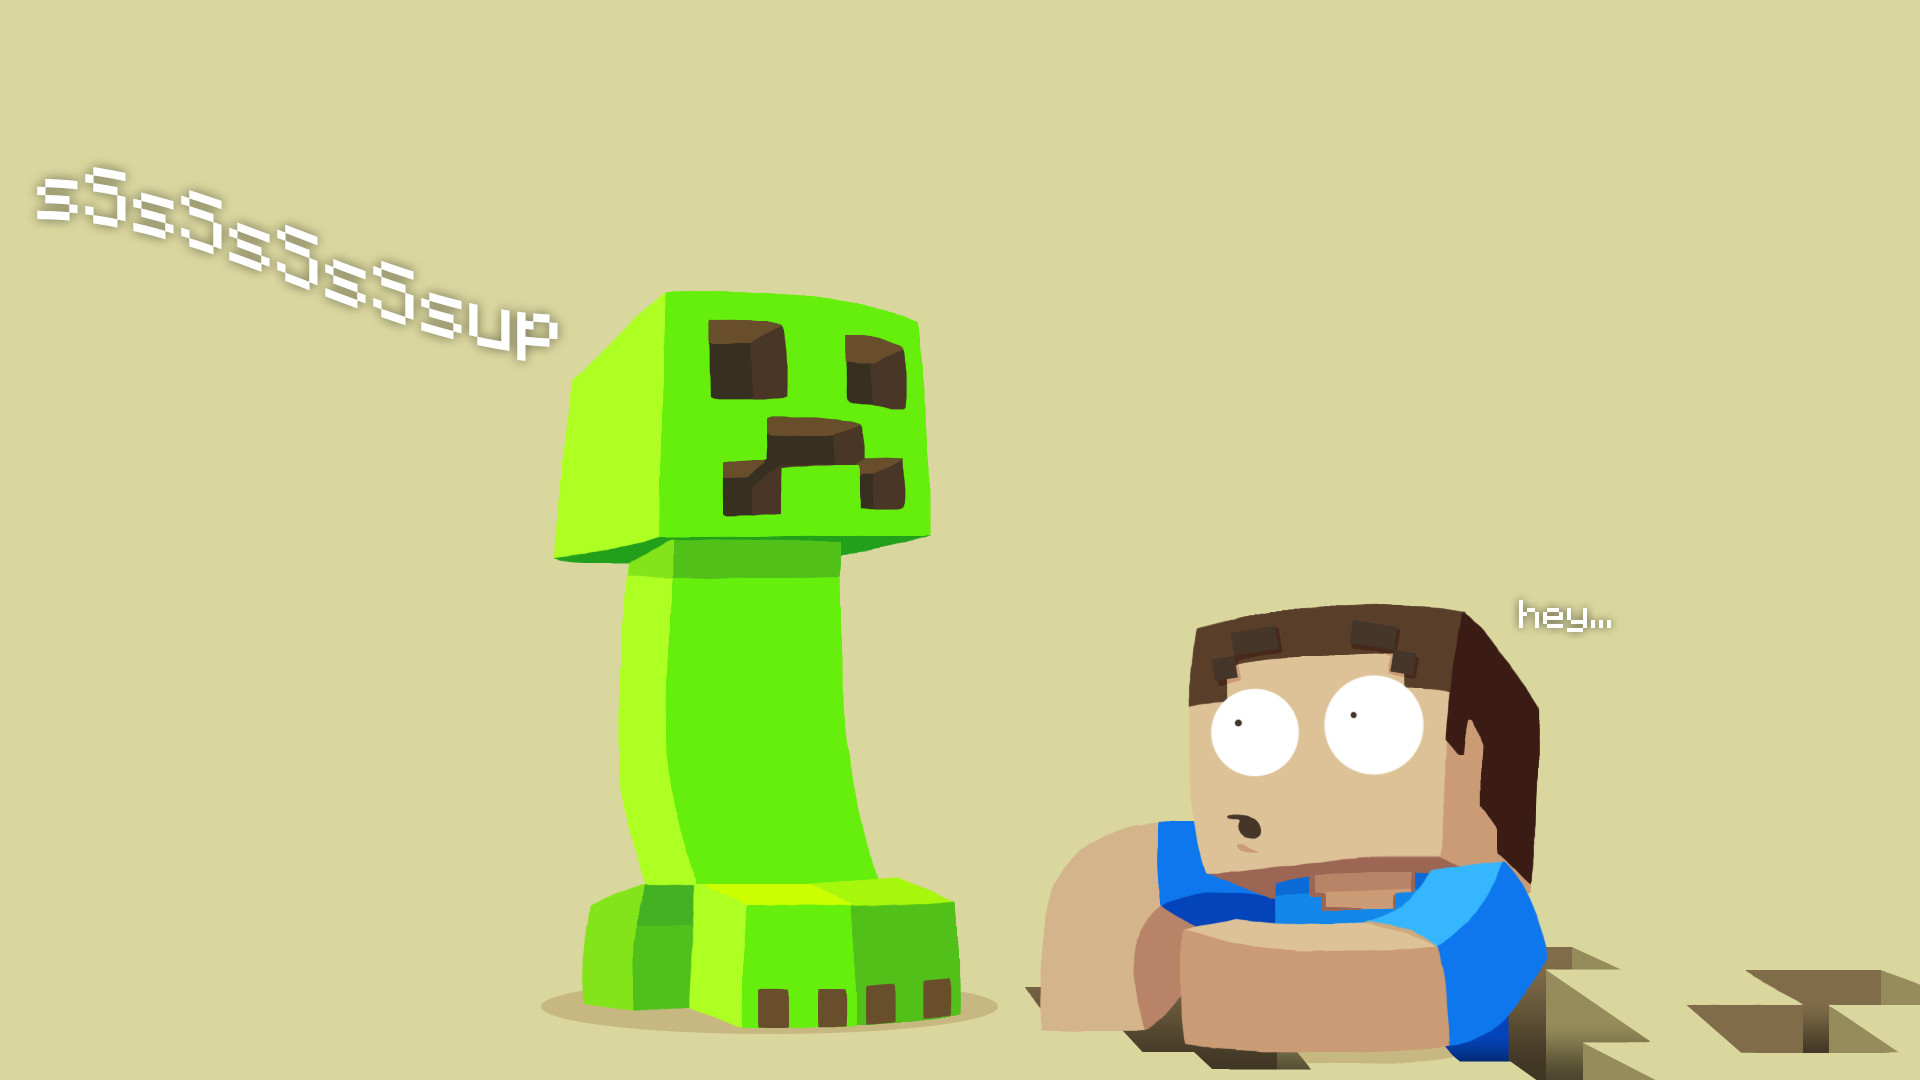 1920x1080 Flat Minecraft Wallpaper with a Creeper and Steve